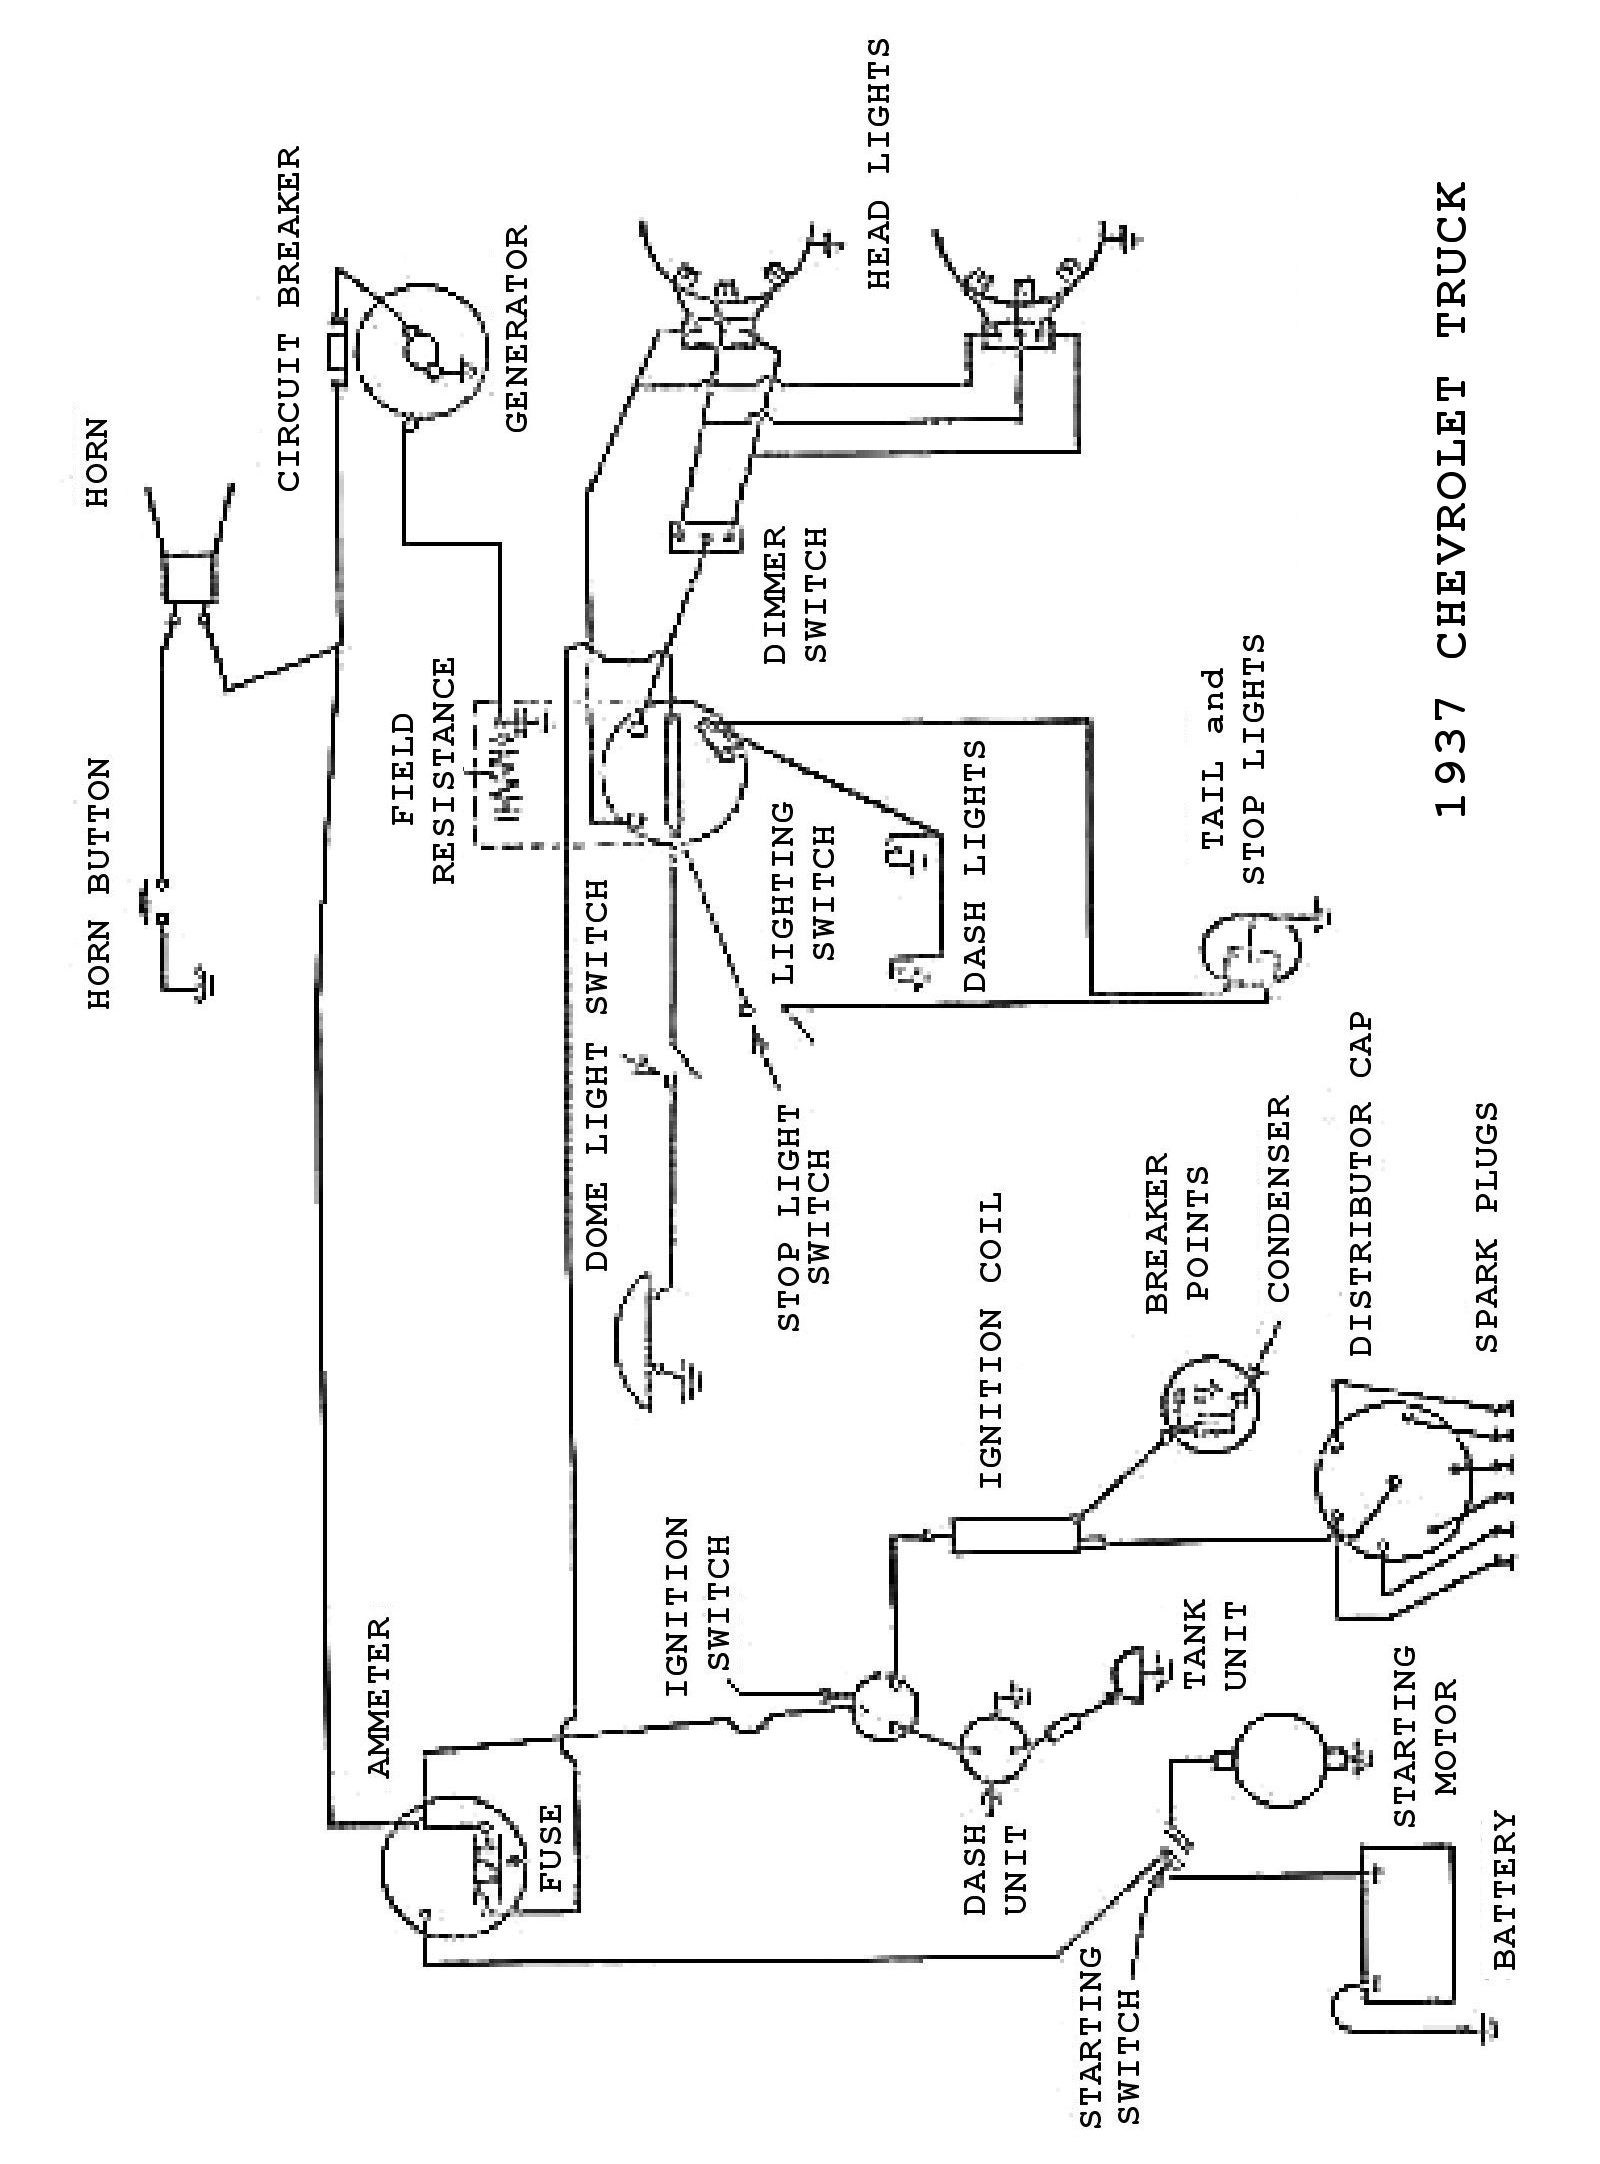 Chevy Wiring diagrams on 98 malibu rear suspension, 2007 malibu wiring diagram, 2000 malibu wiring diagram, 2004 malibu wiring diagram, 98 malibu firing order, 99 malibu wiring diagram, 98 malibu transmission diagram, chevy malibu wiring diagram,